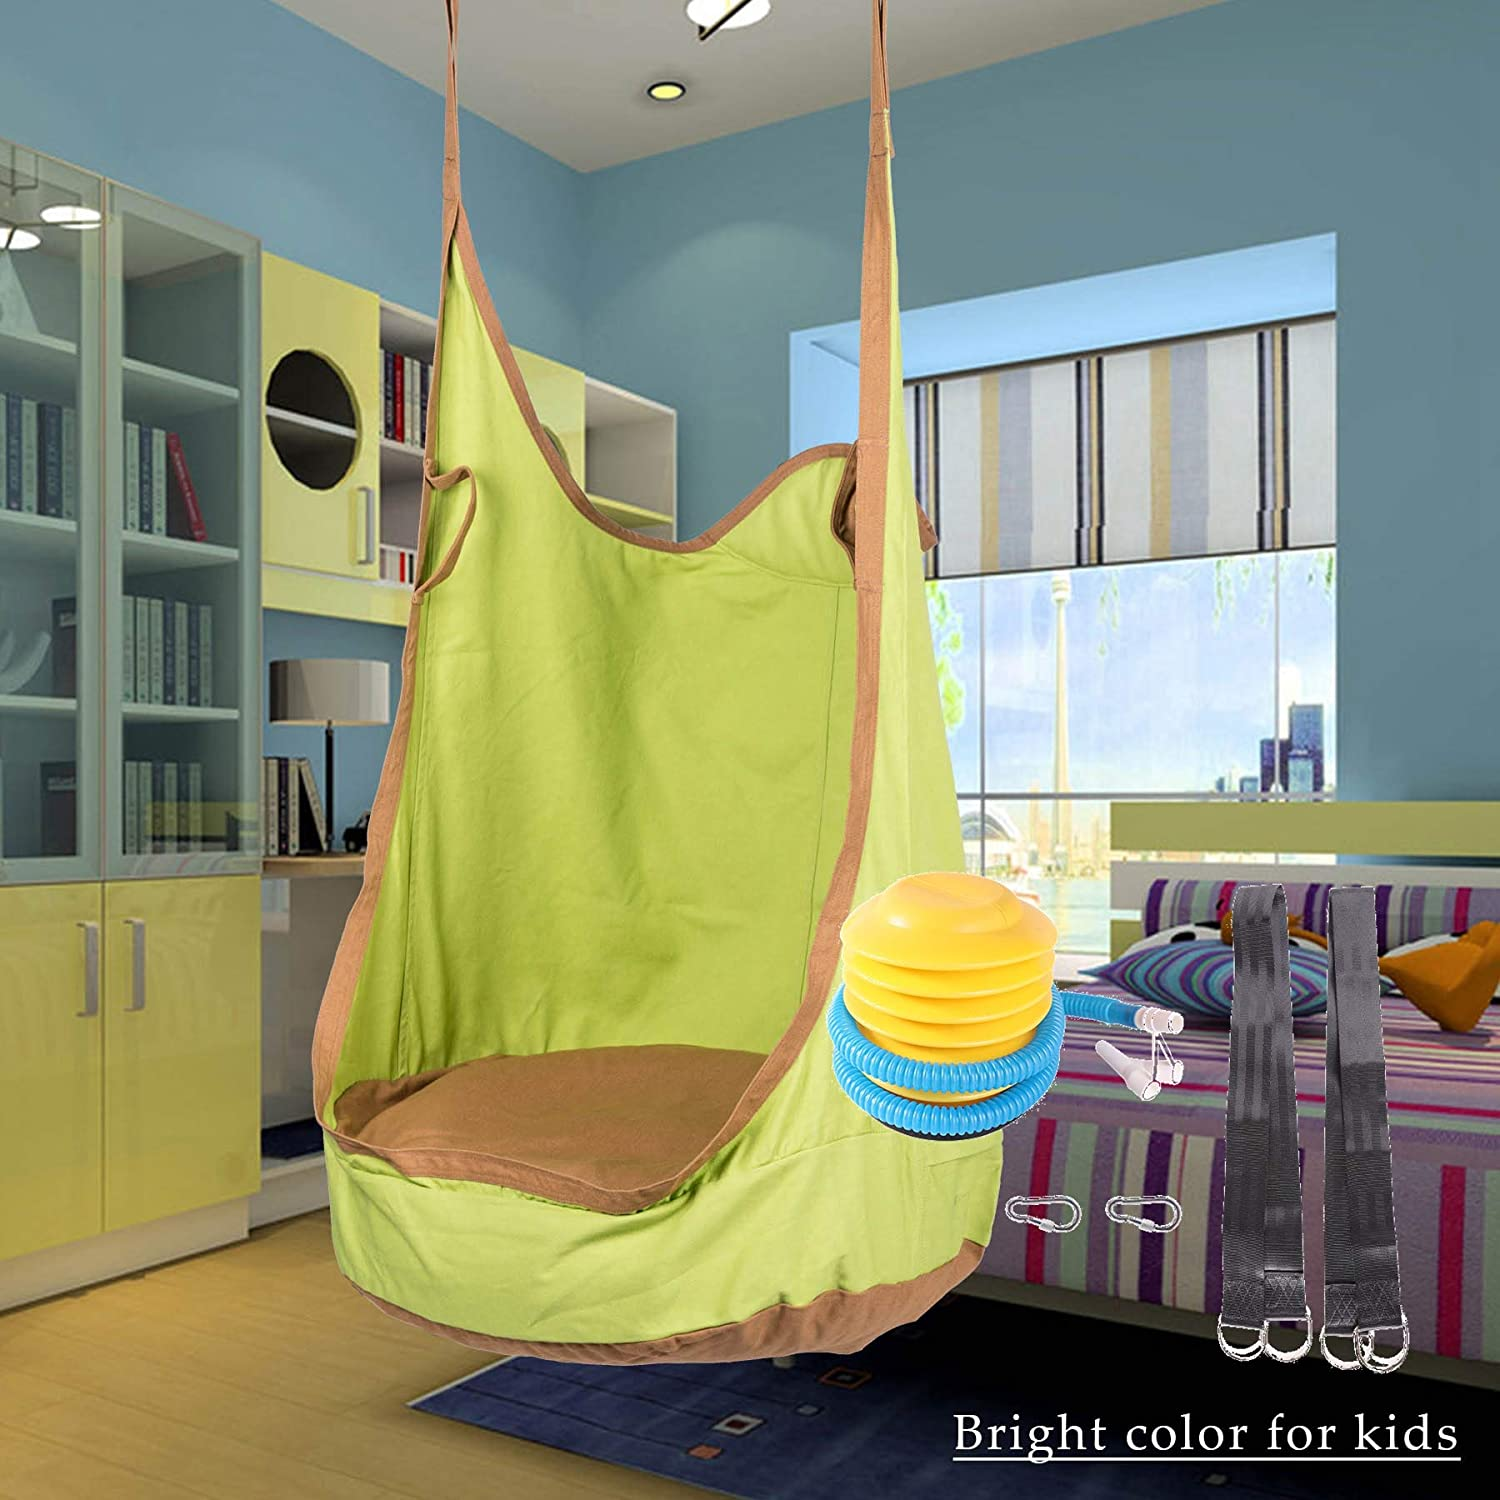 CO-Z Kids Pod Swing Seat Child Hanging Hammock Chair Indoor Outdoor Kid Hammock Seat Pod Nook Upgraded Two Straps, Pink